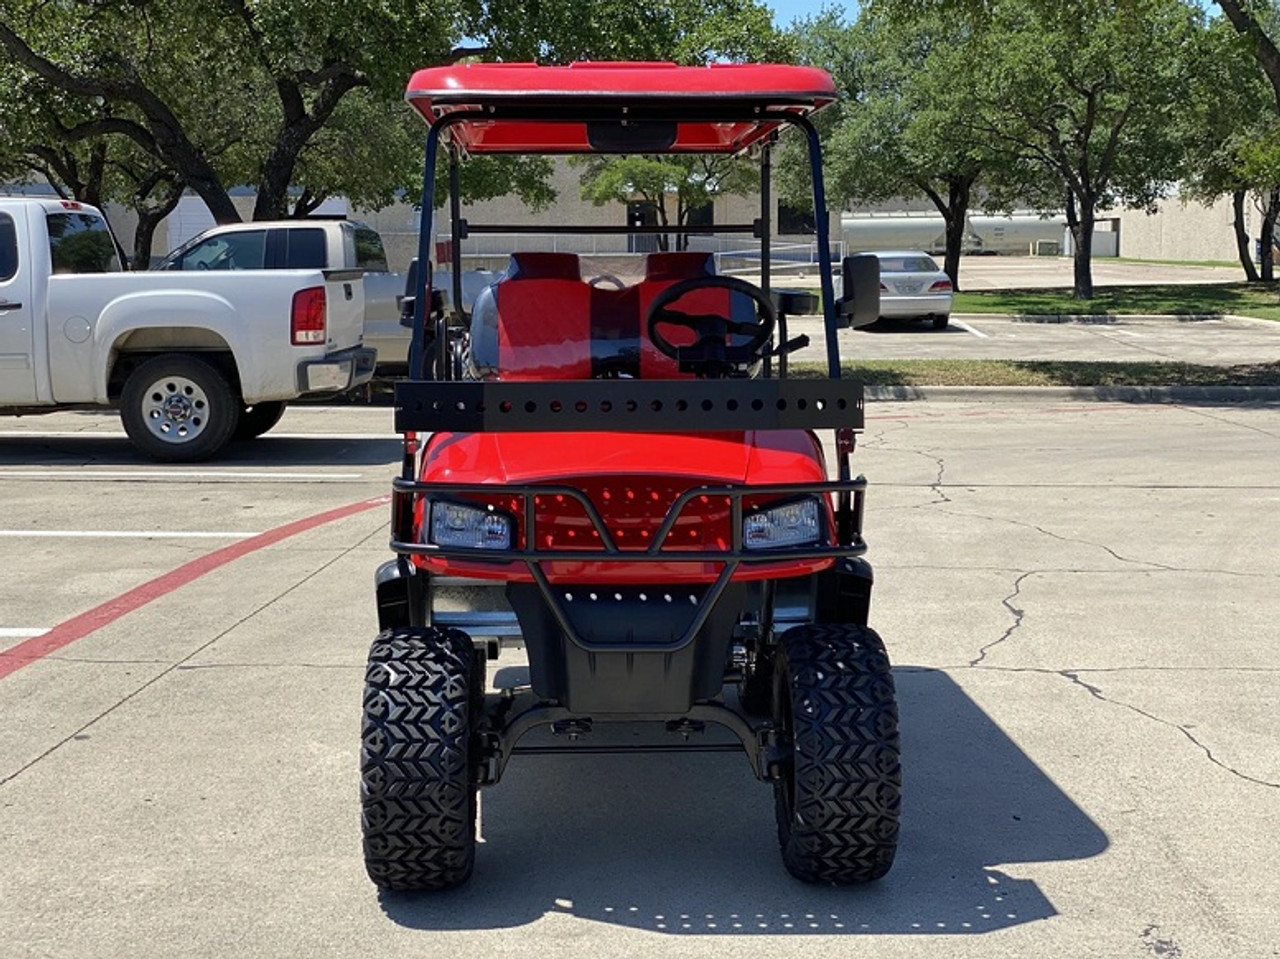 DYNAMIC ENFORCER LSV GOLF CART RED